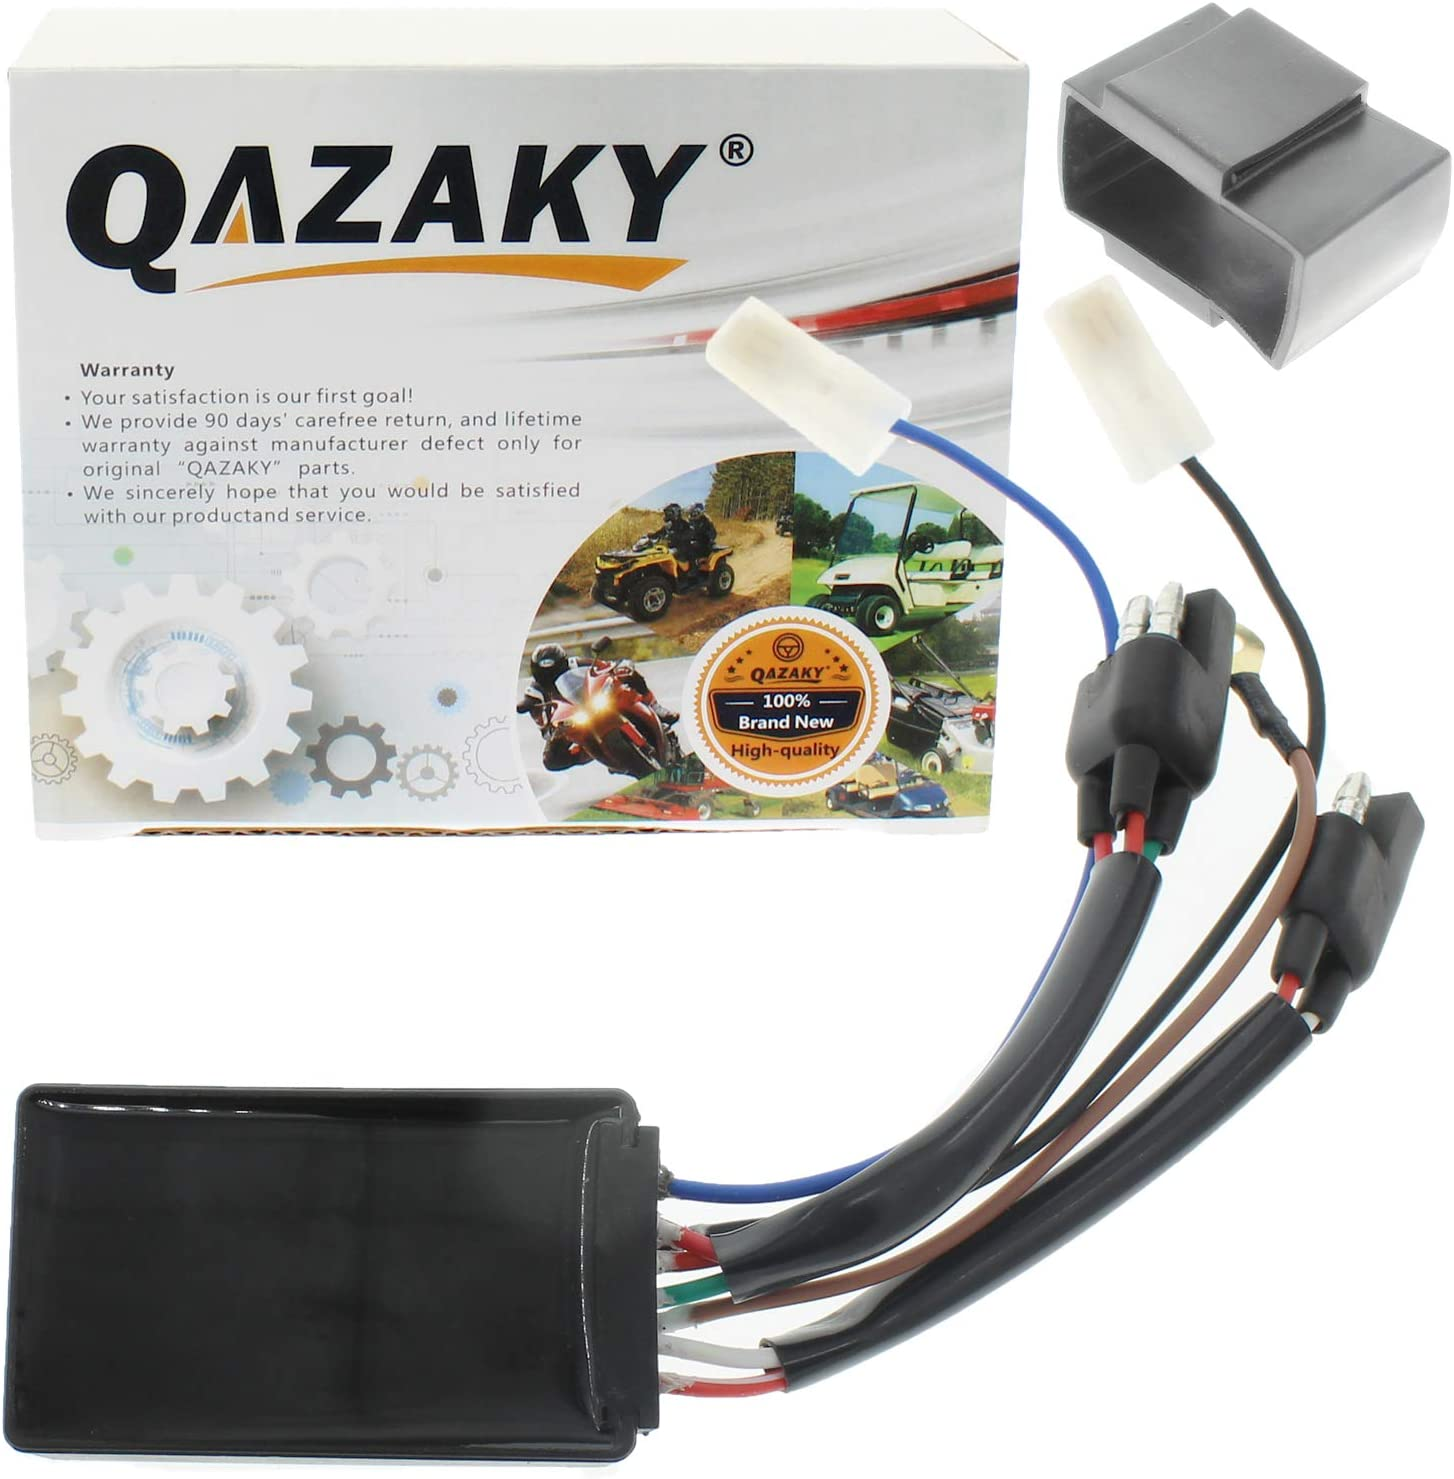 QAZAKY CDI Box Replacement for Polaris Big Boss Magnum Ranger Scrambler Sportsman Worker Xplorer Predator 335 400 425 500 90 3084691 3085382 3085564 3085639 3086982 495288 495853 Series 10 11 Carb